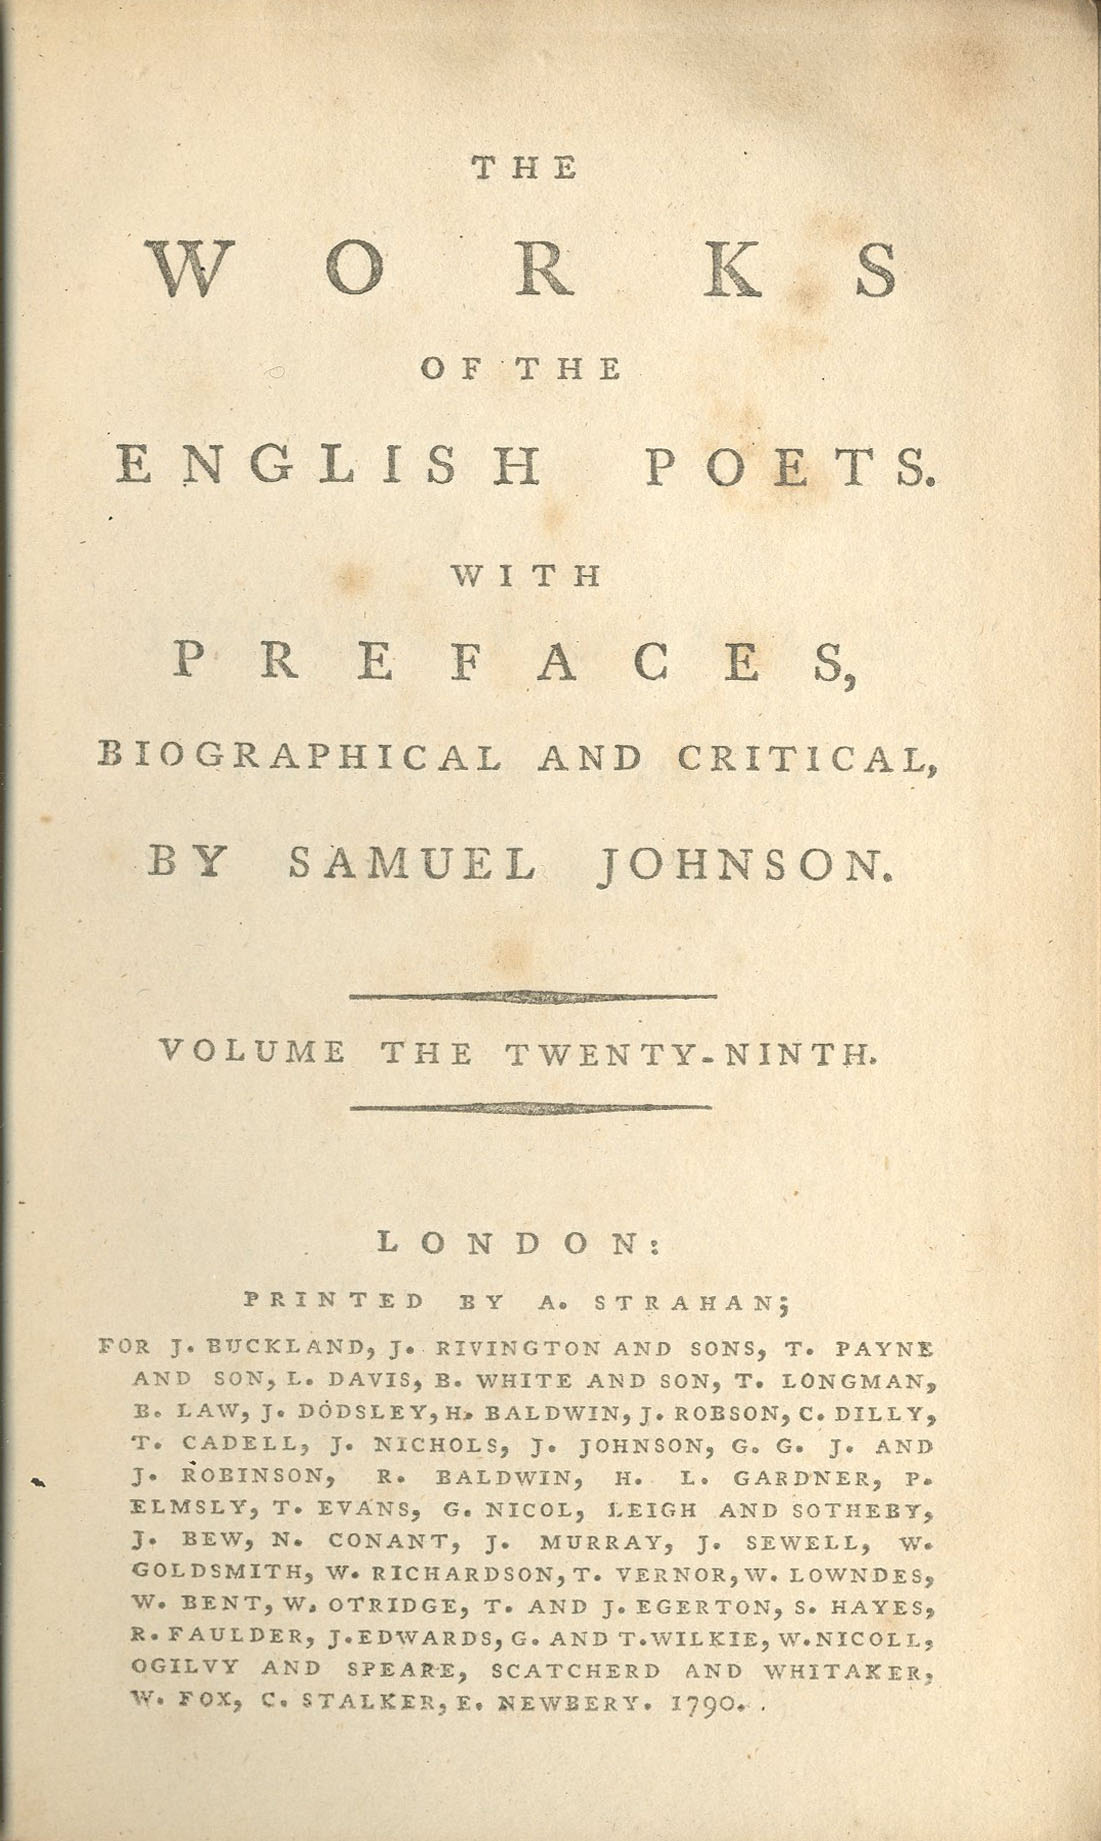 Johnson, Samuel, The Works of English Poets , v.29 of 75, PR1171 .J6, Special Collections Research Center, George Mason University.